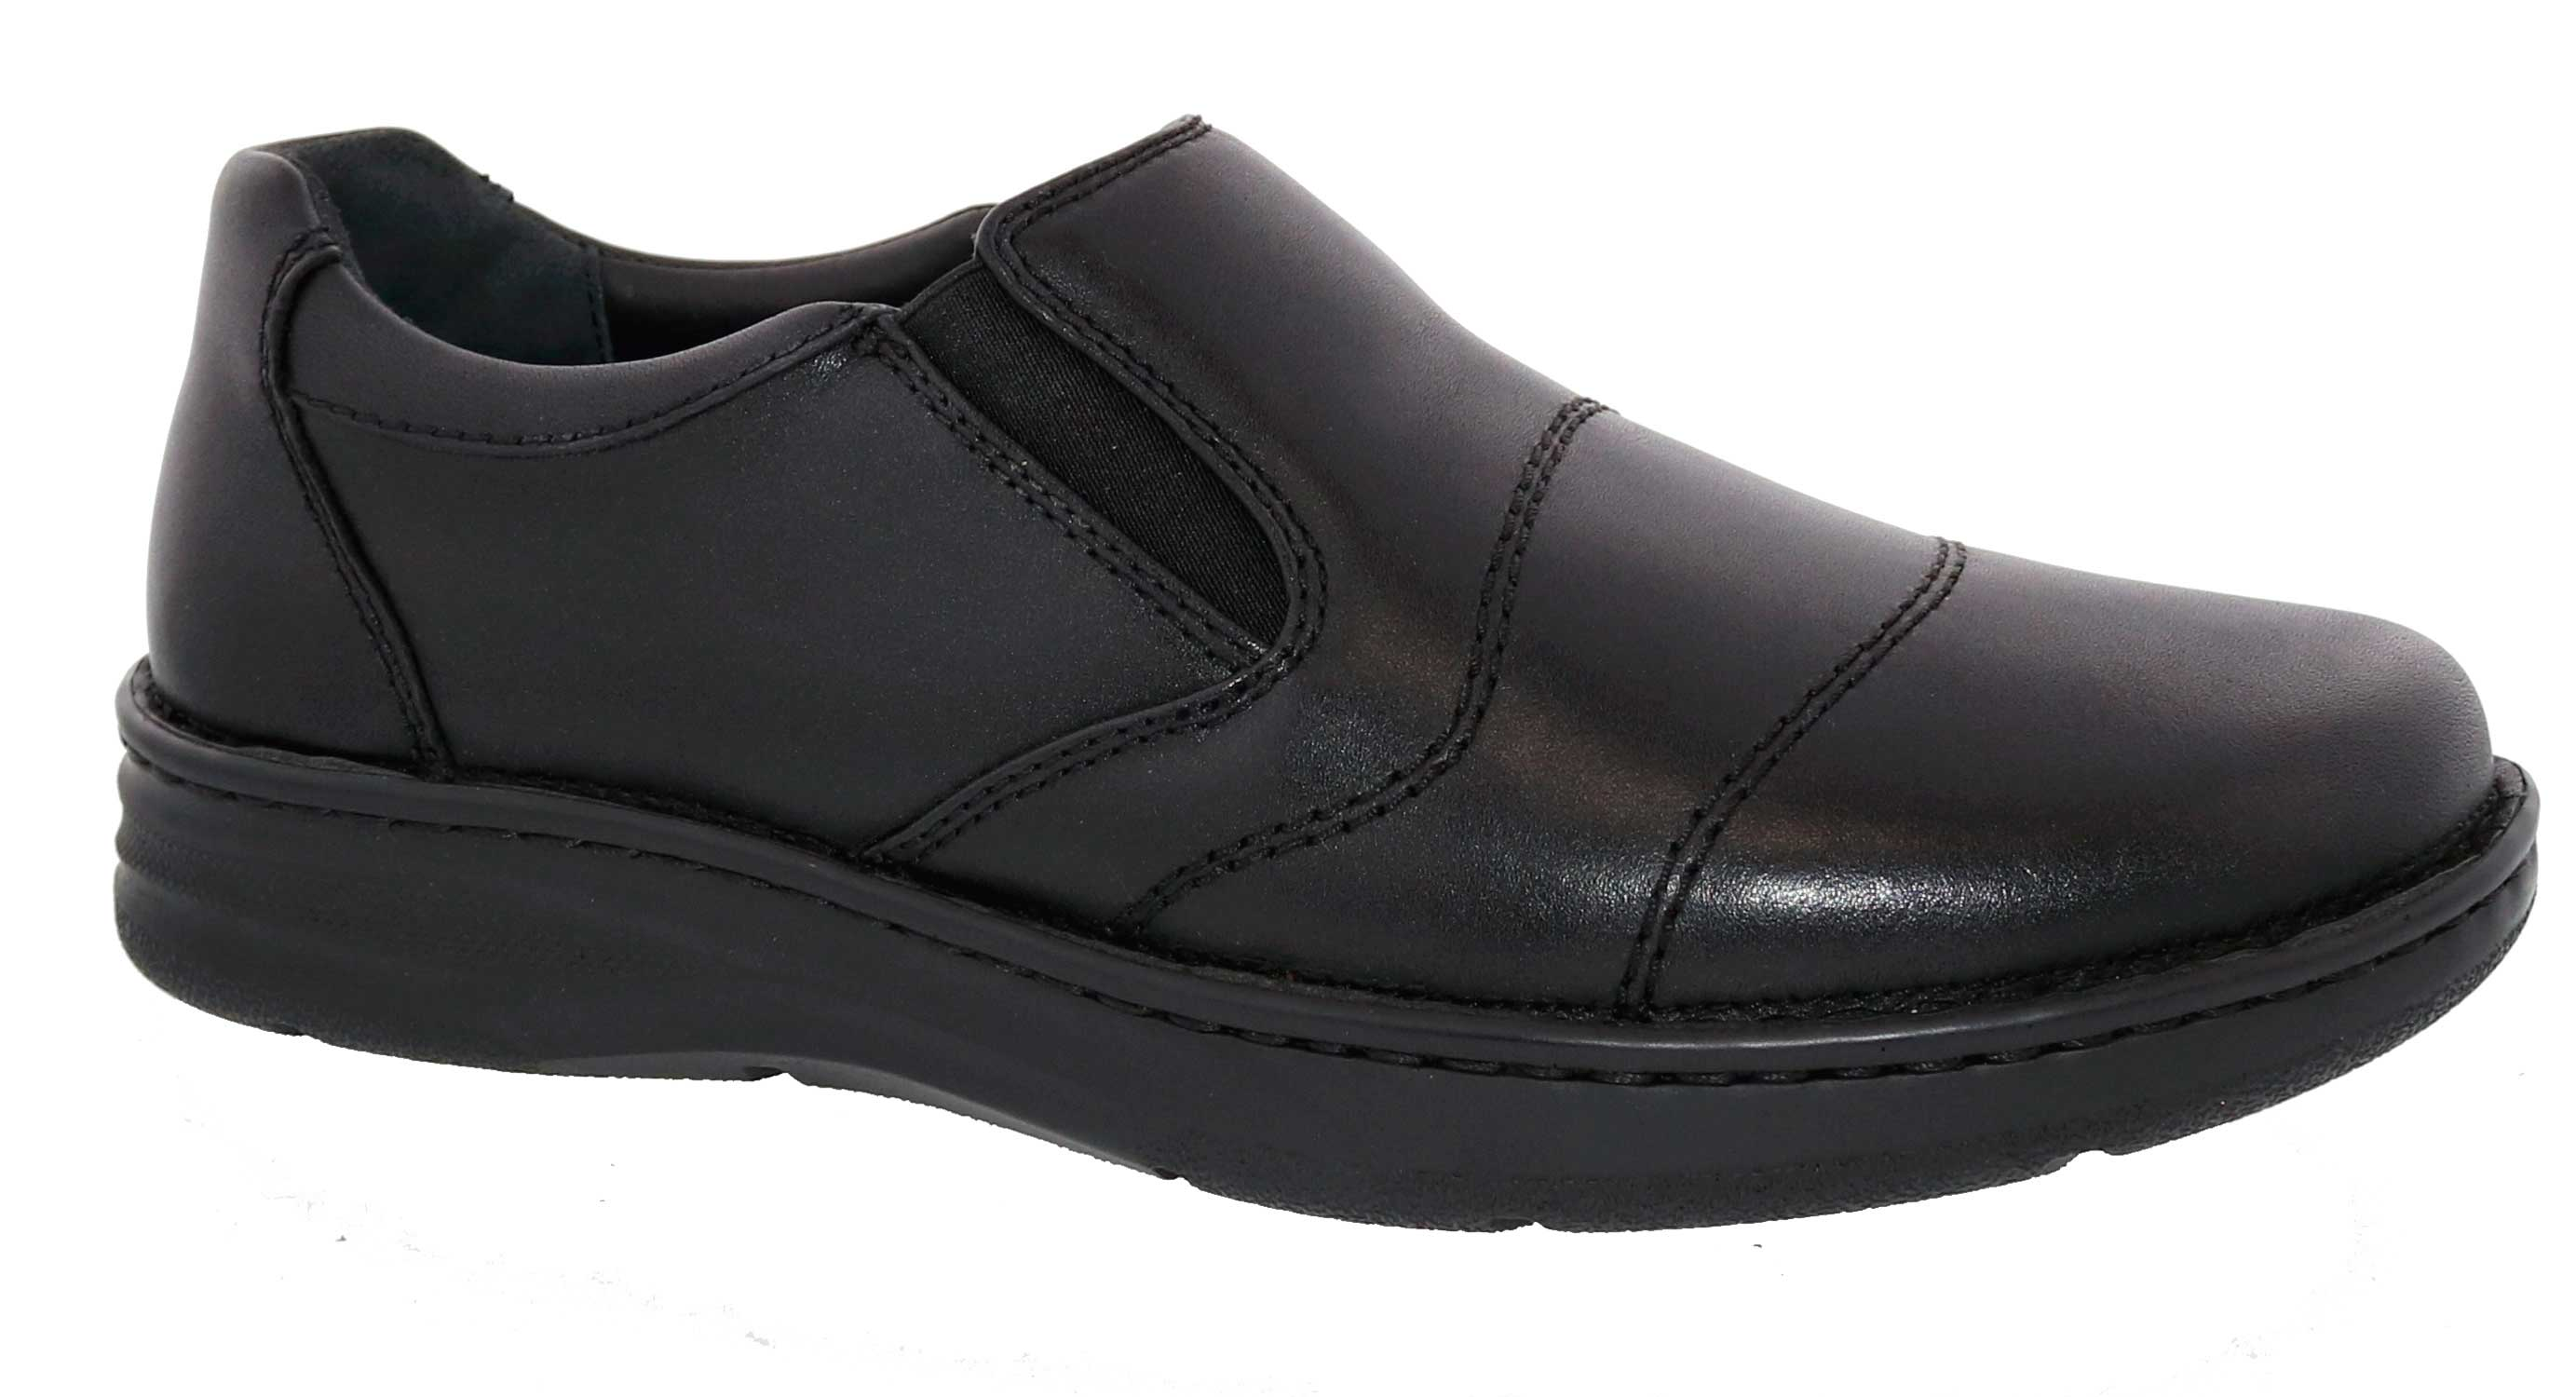 Drew Shoes - Fairfield - Black Leather - Casual Shoe